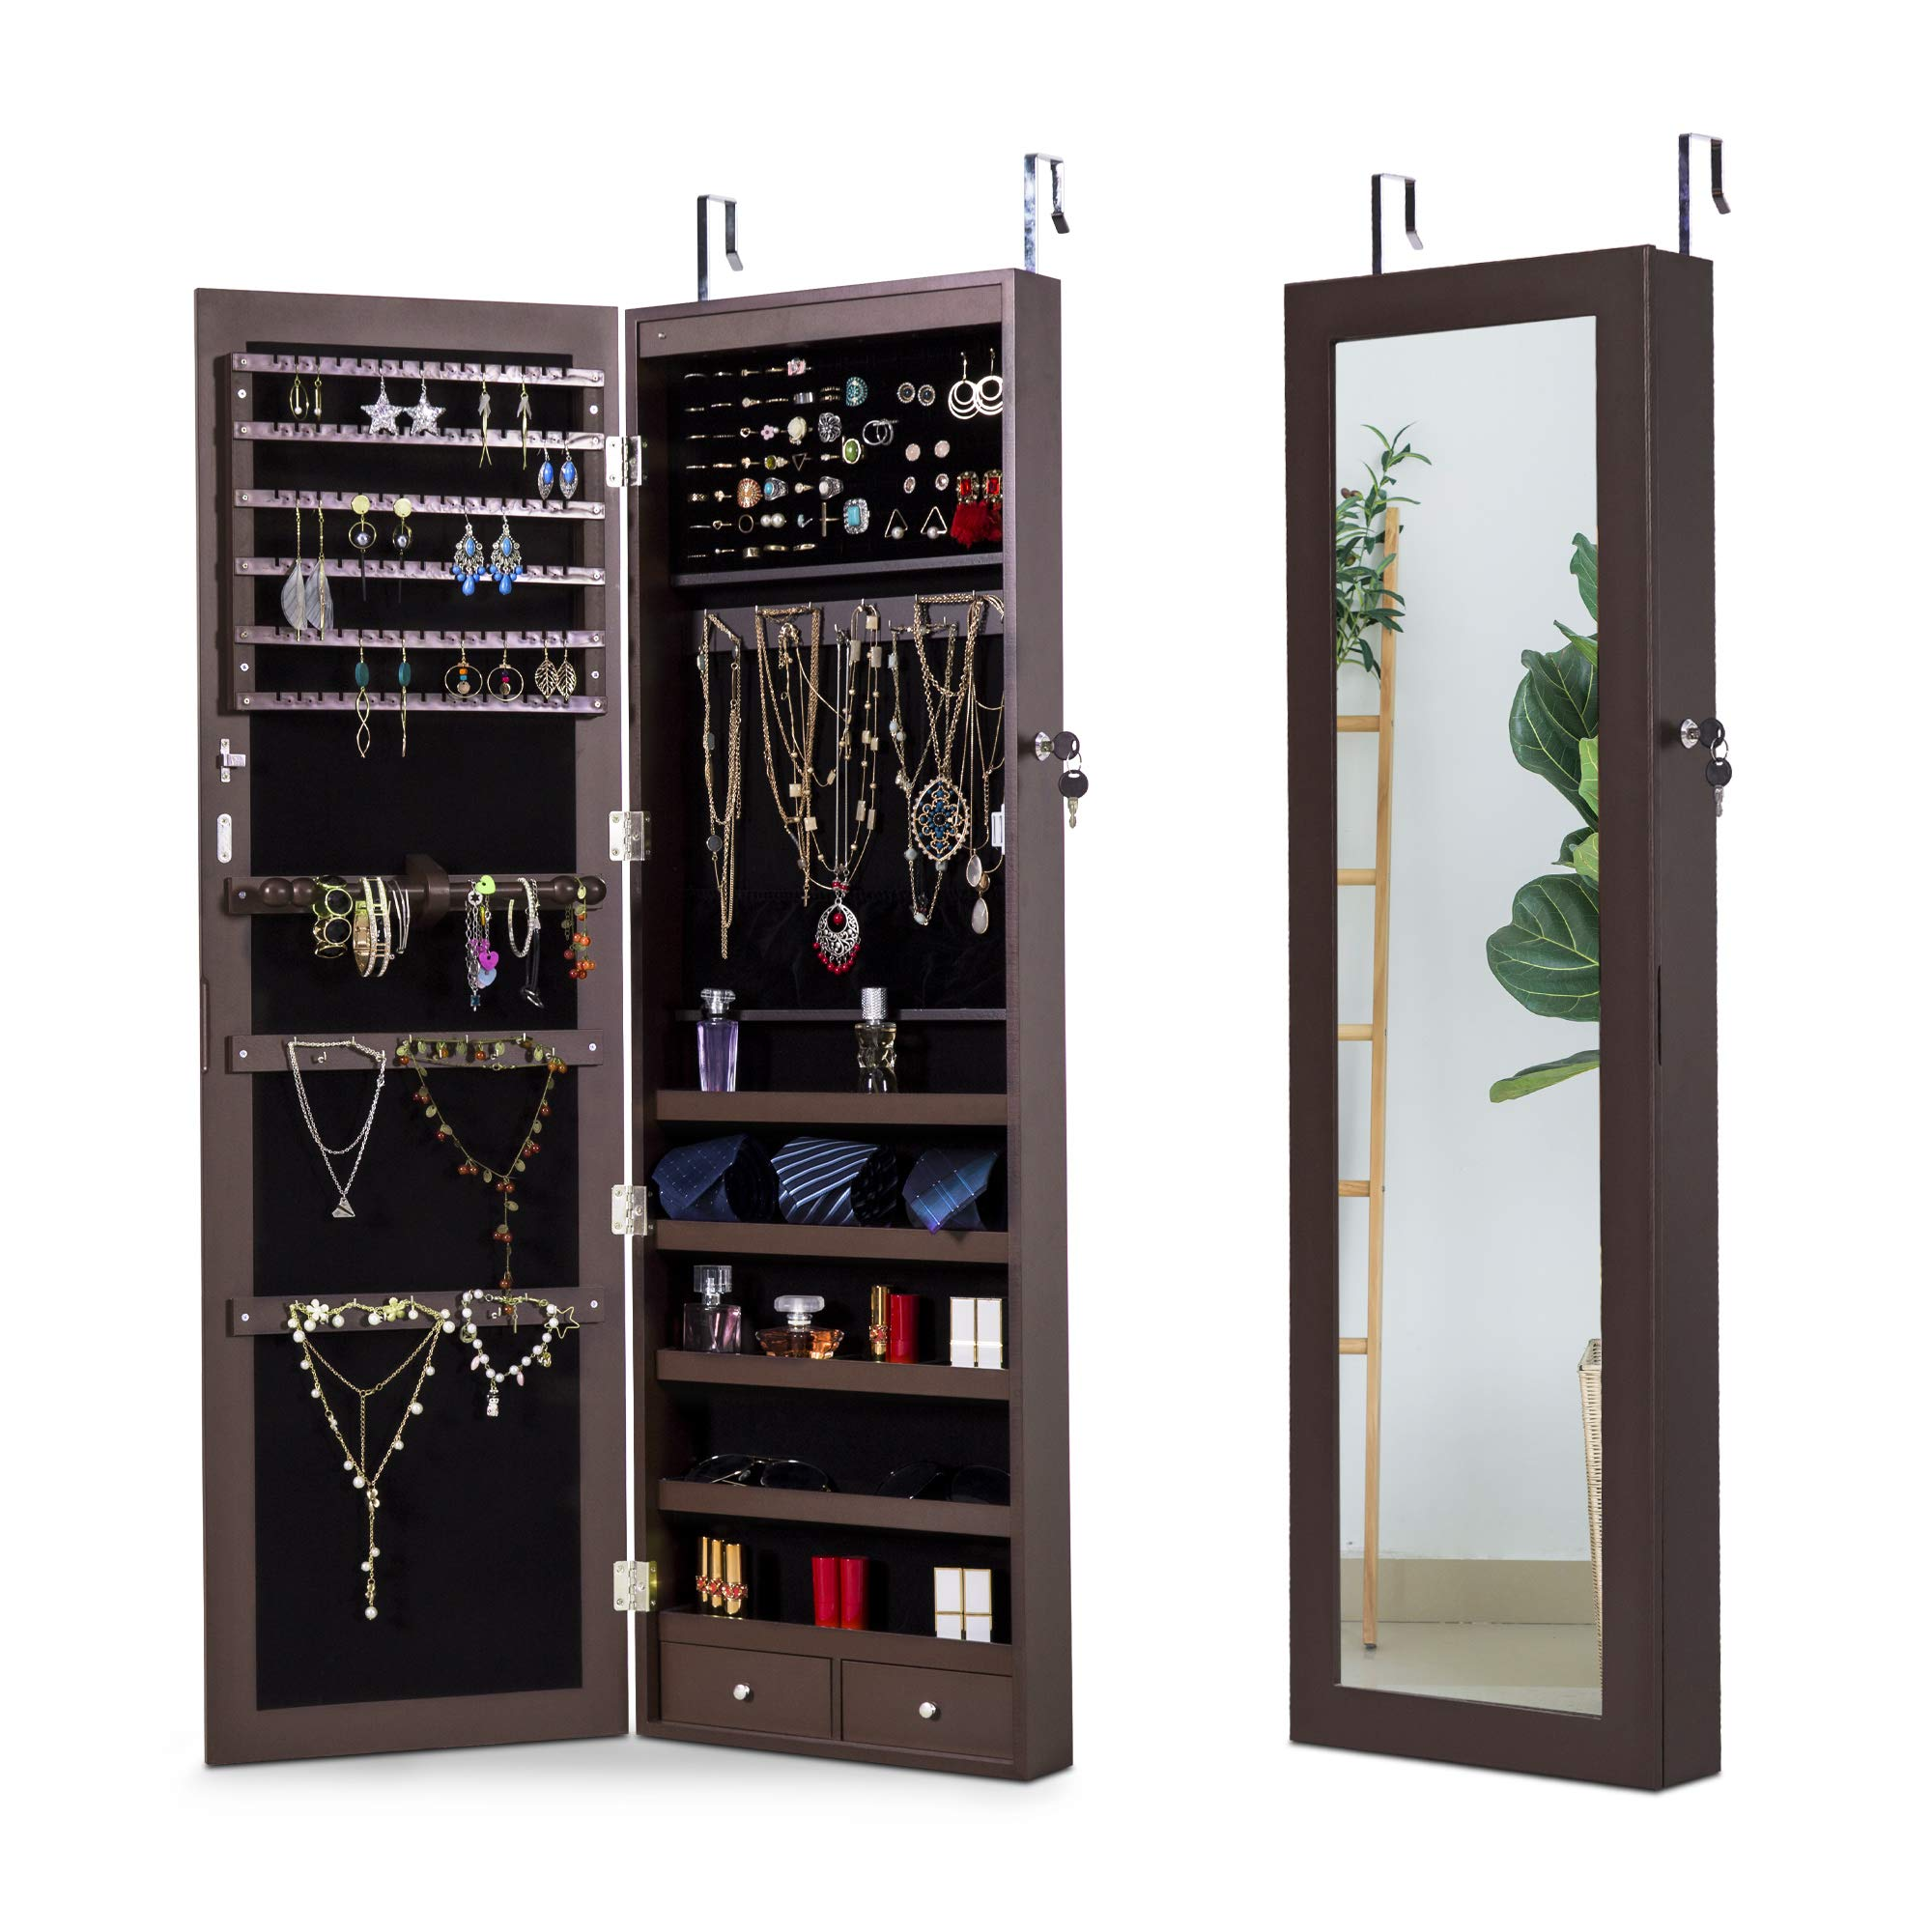 Cloud Mountain Jewelry Cabinet 6 LEDs Jewelry Armoire Lockable Wall Door Mounted Jewelry Cabinet Organizer with Mirror 2 Drawers Bedroom, Living Room, Cloakroom, Closet (Espresso)